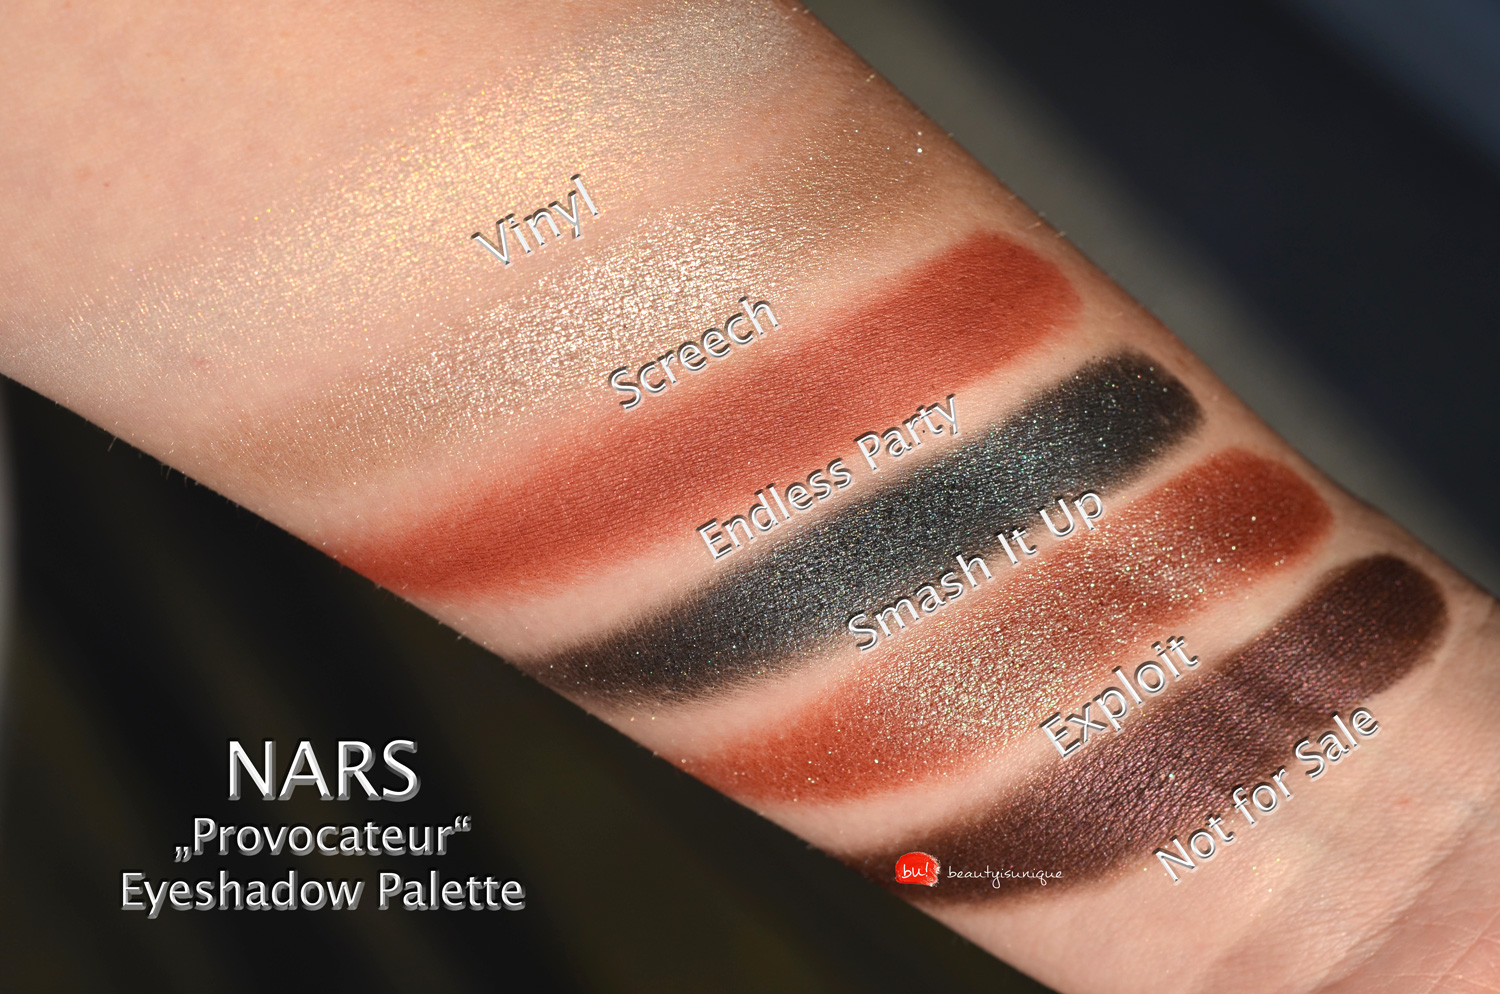 nass-provocateur-eyeshadow-palettr